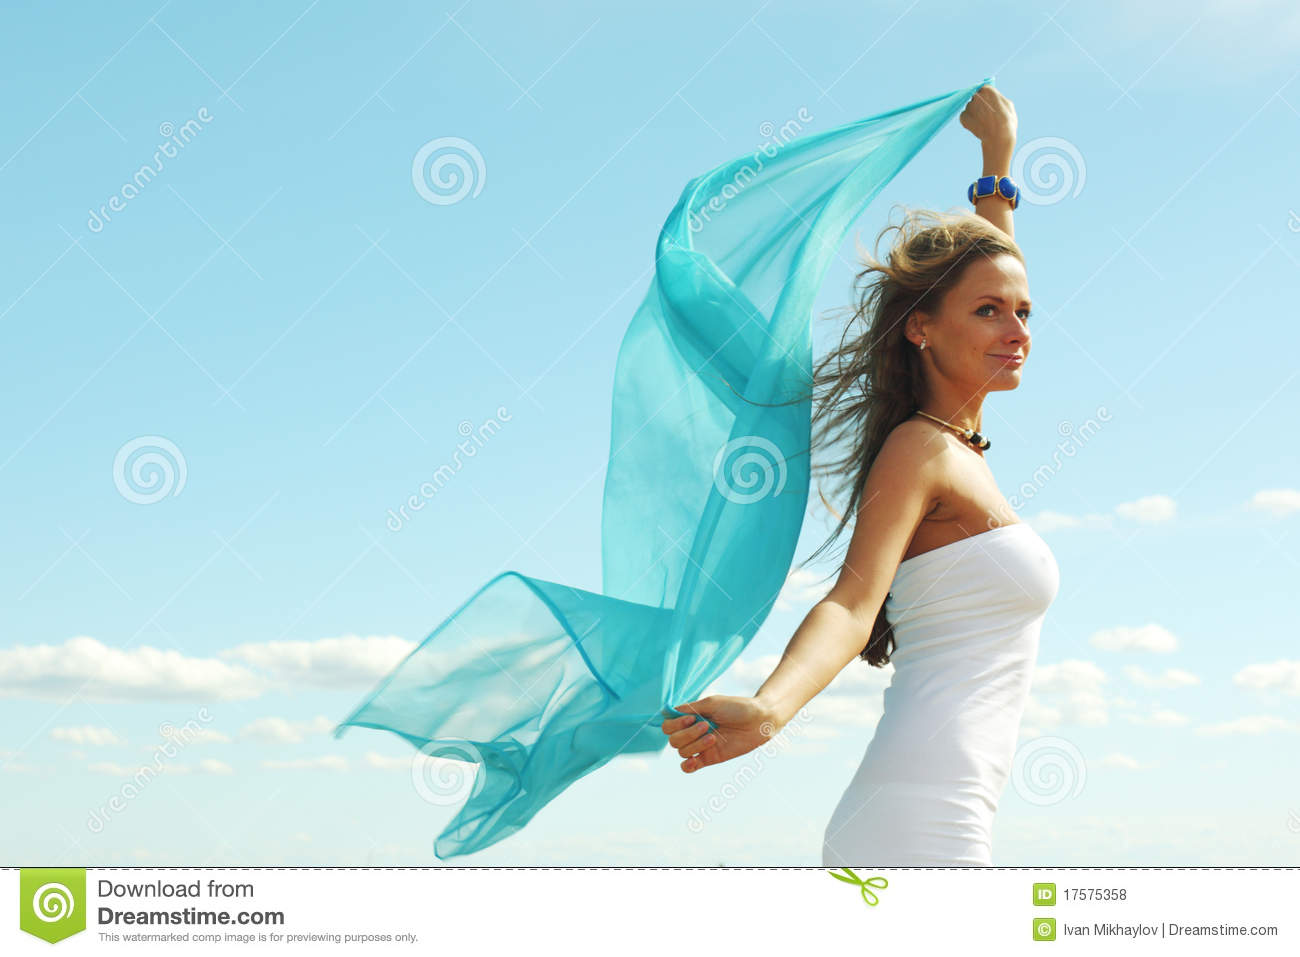 Fly Away Royalty Free Stock Photos - Image: 17575358